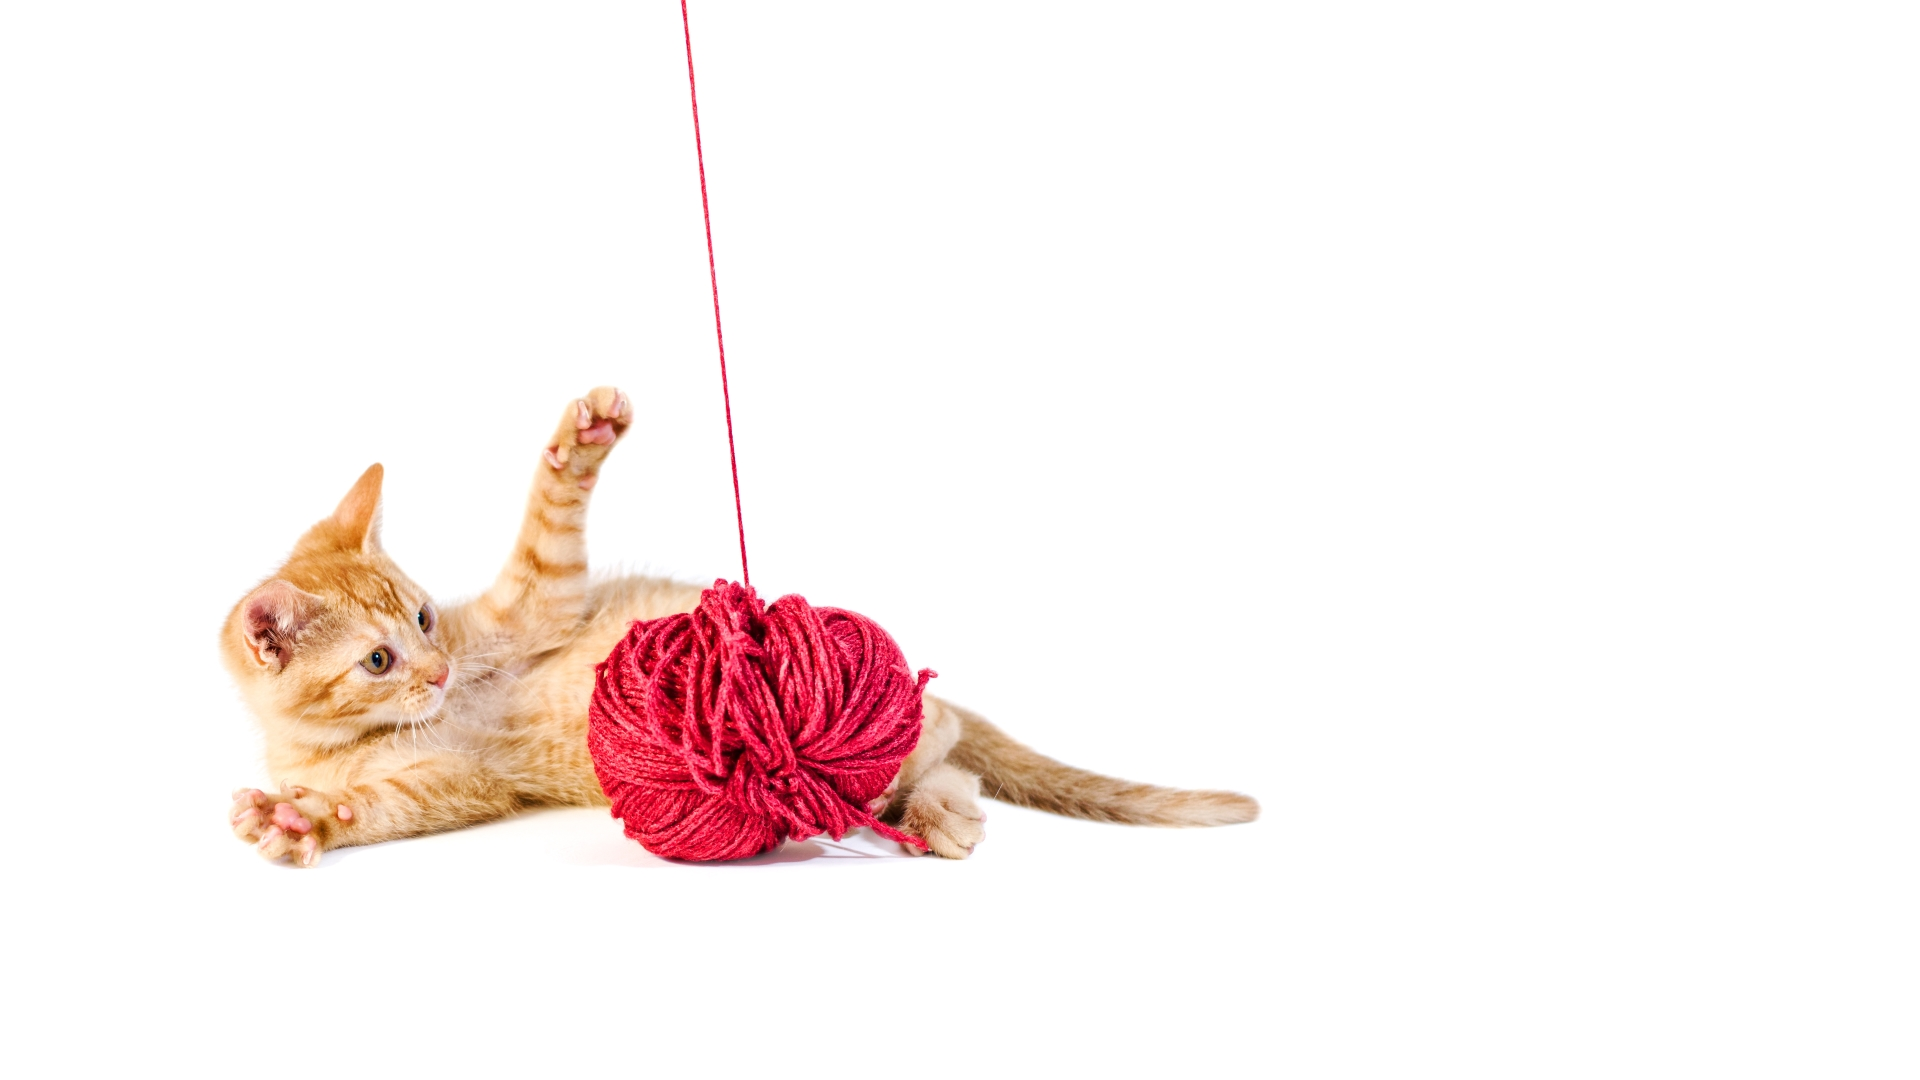 Cute kitten playing with ball of wool, ©5im0n - File #55567302 - AdobeStock.com